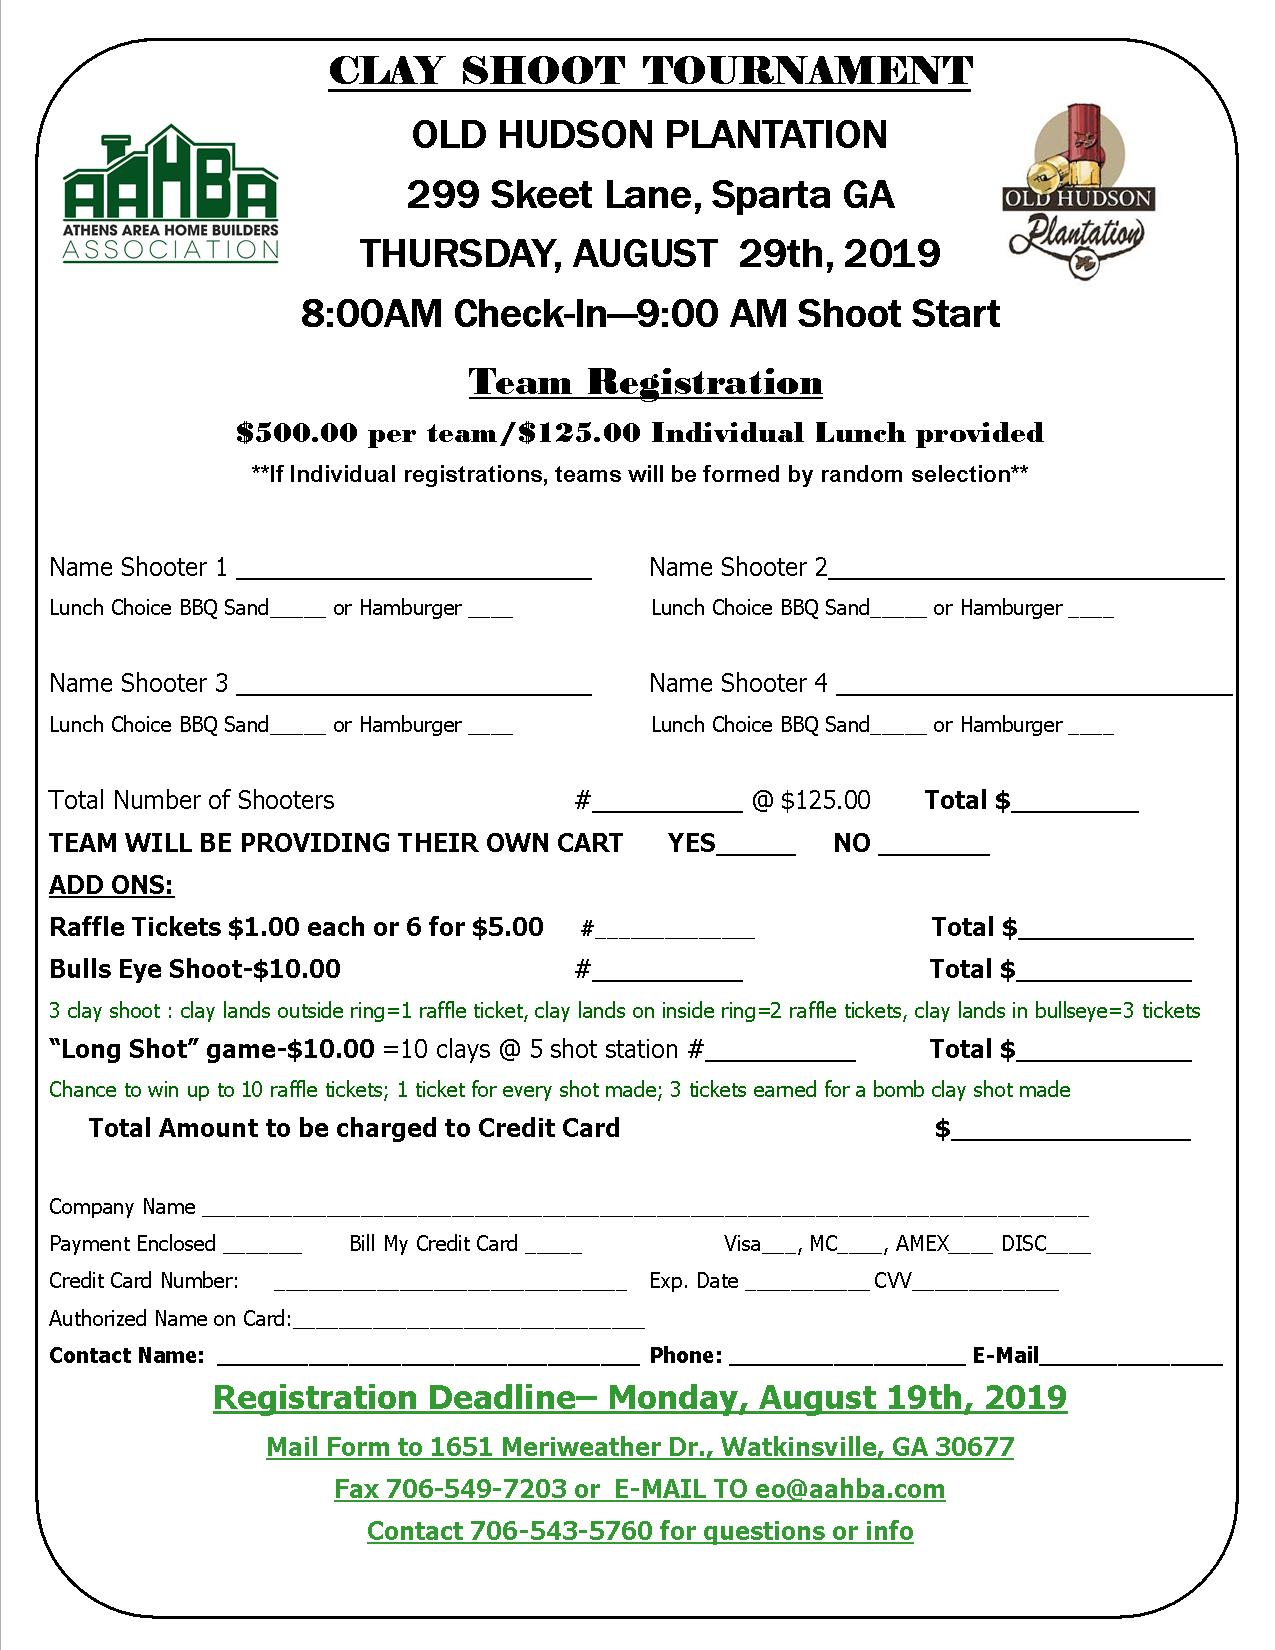 Clay Shoot Team-Shooter Registration Form